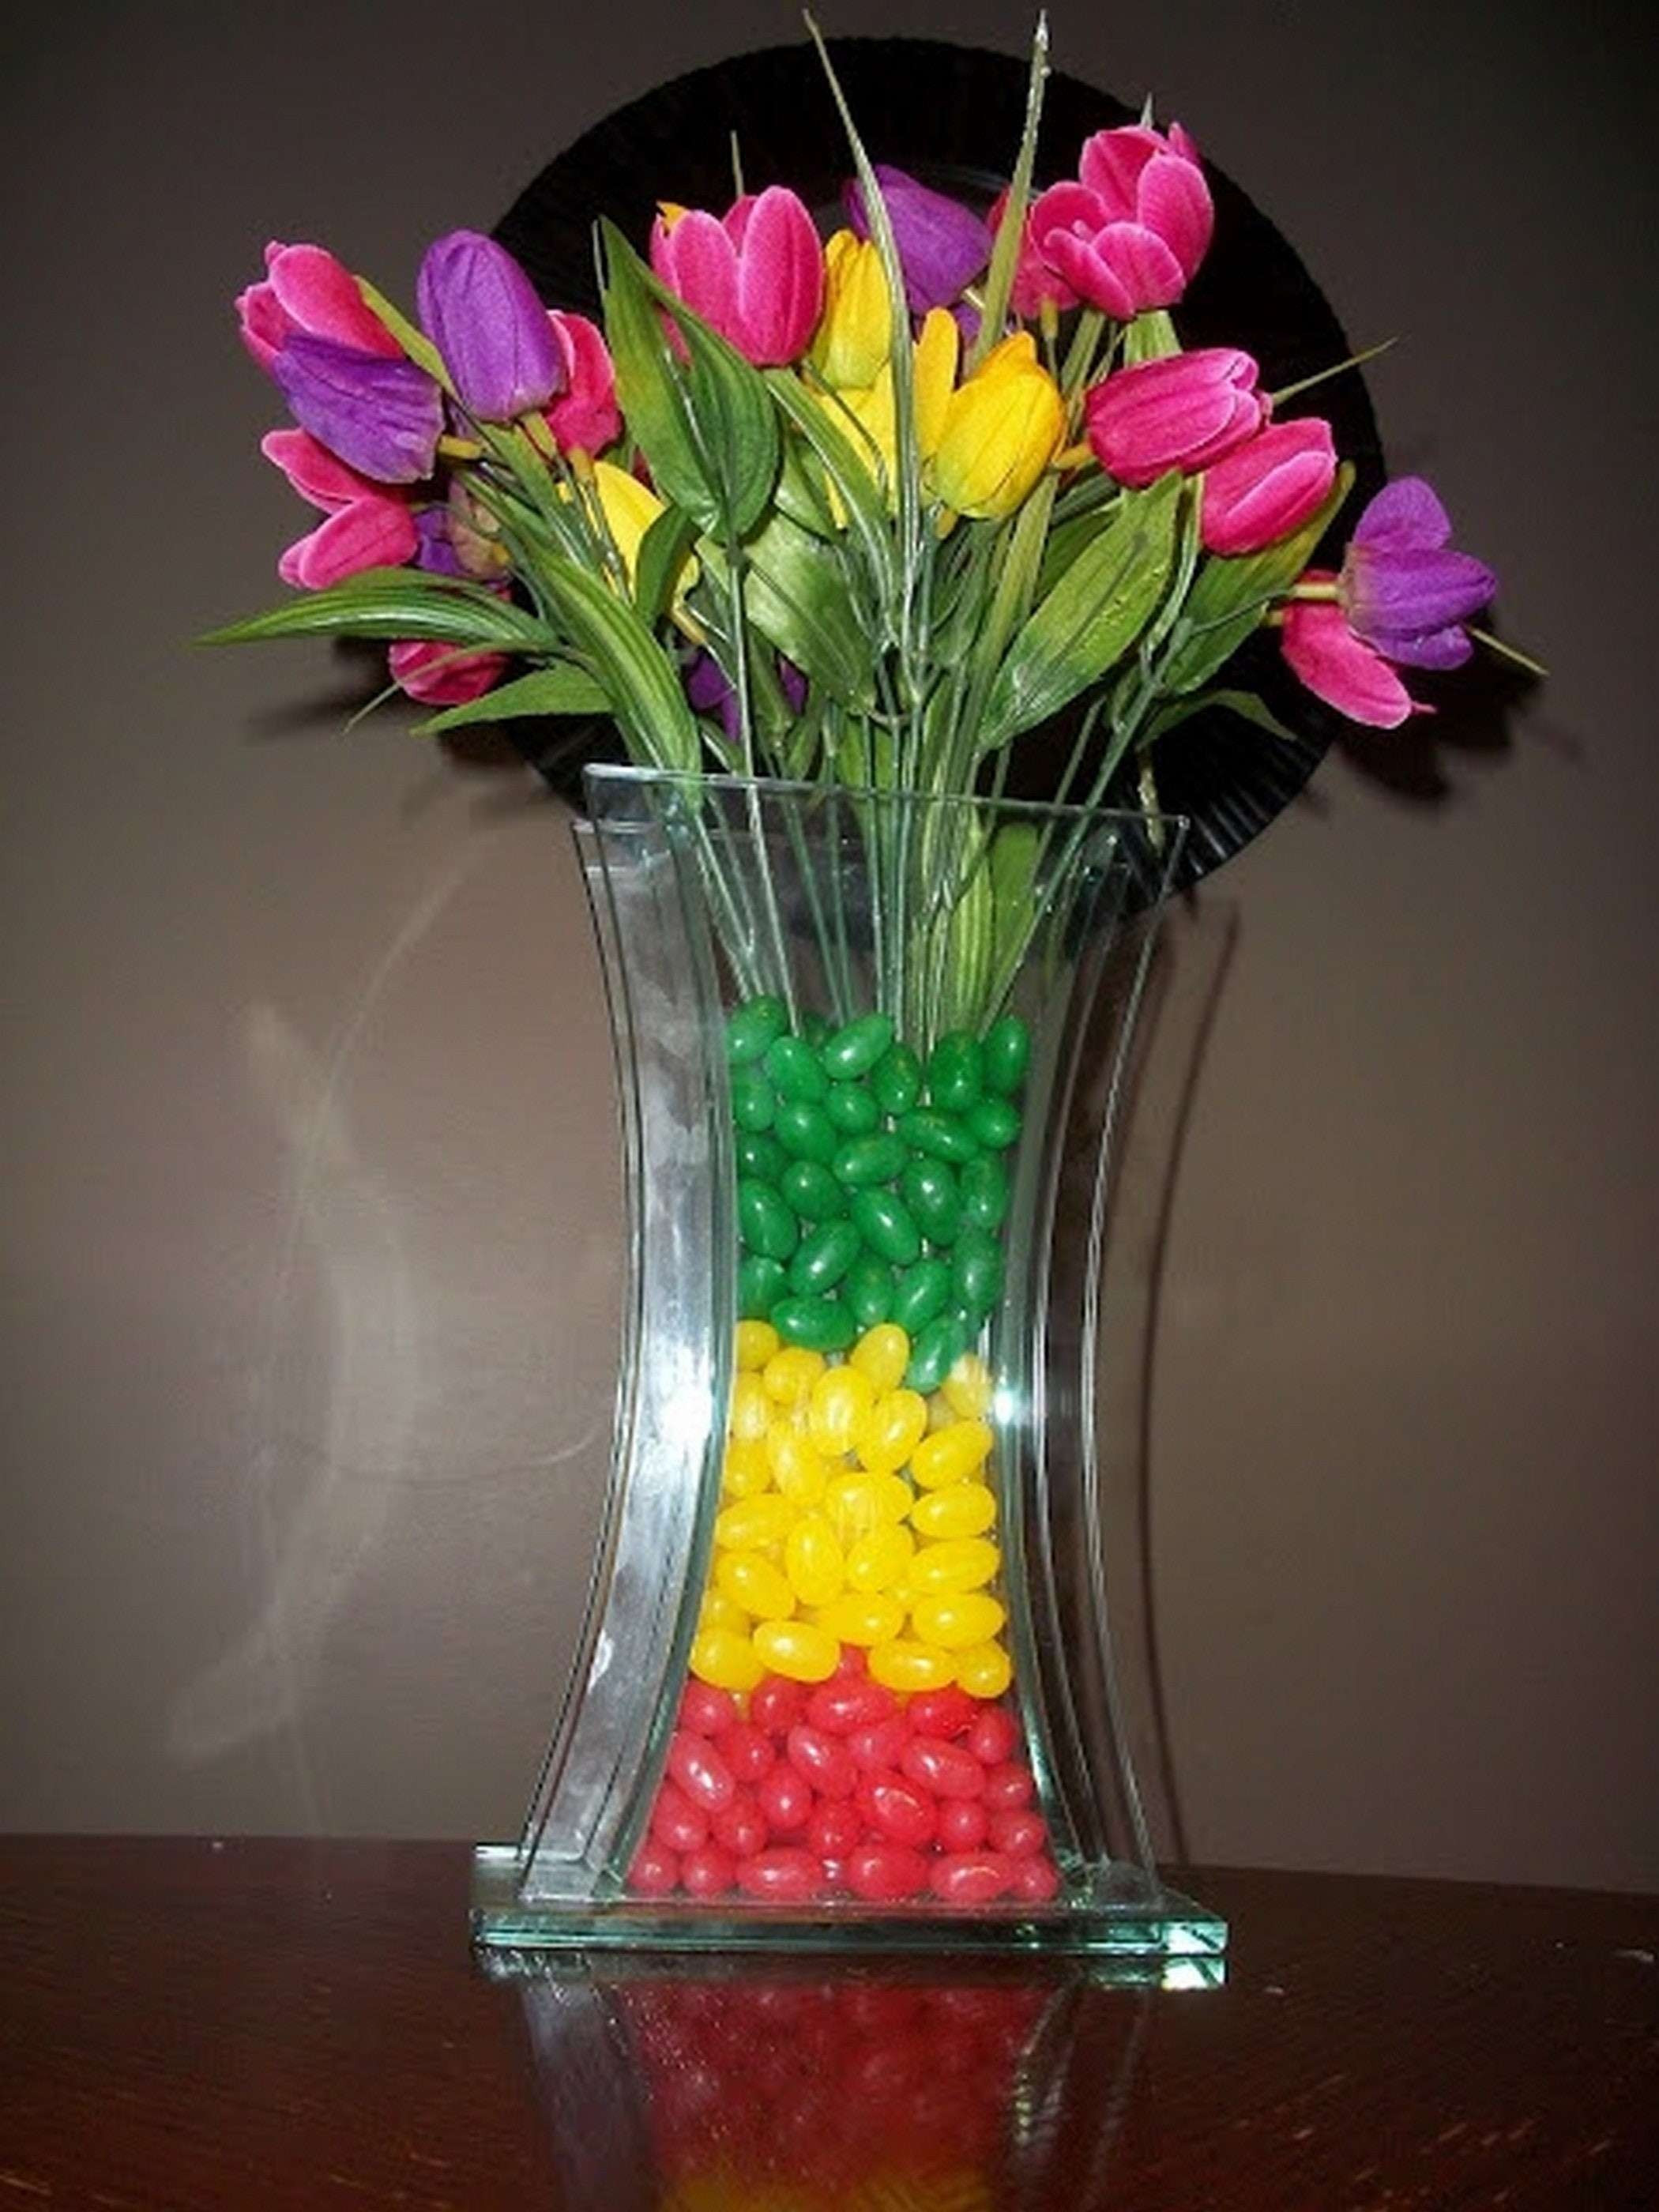 Plastic Centerpiece Vases Of 15 Cheap and Easy Diy Vase Filler Ideas 3h Vases Flower I 0d Scheme Regarding 15 Cheap and Easy Diy Vase Filler Ideas 3h Vases Flower I 0d Scheme